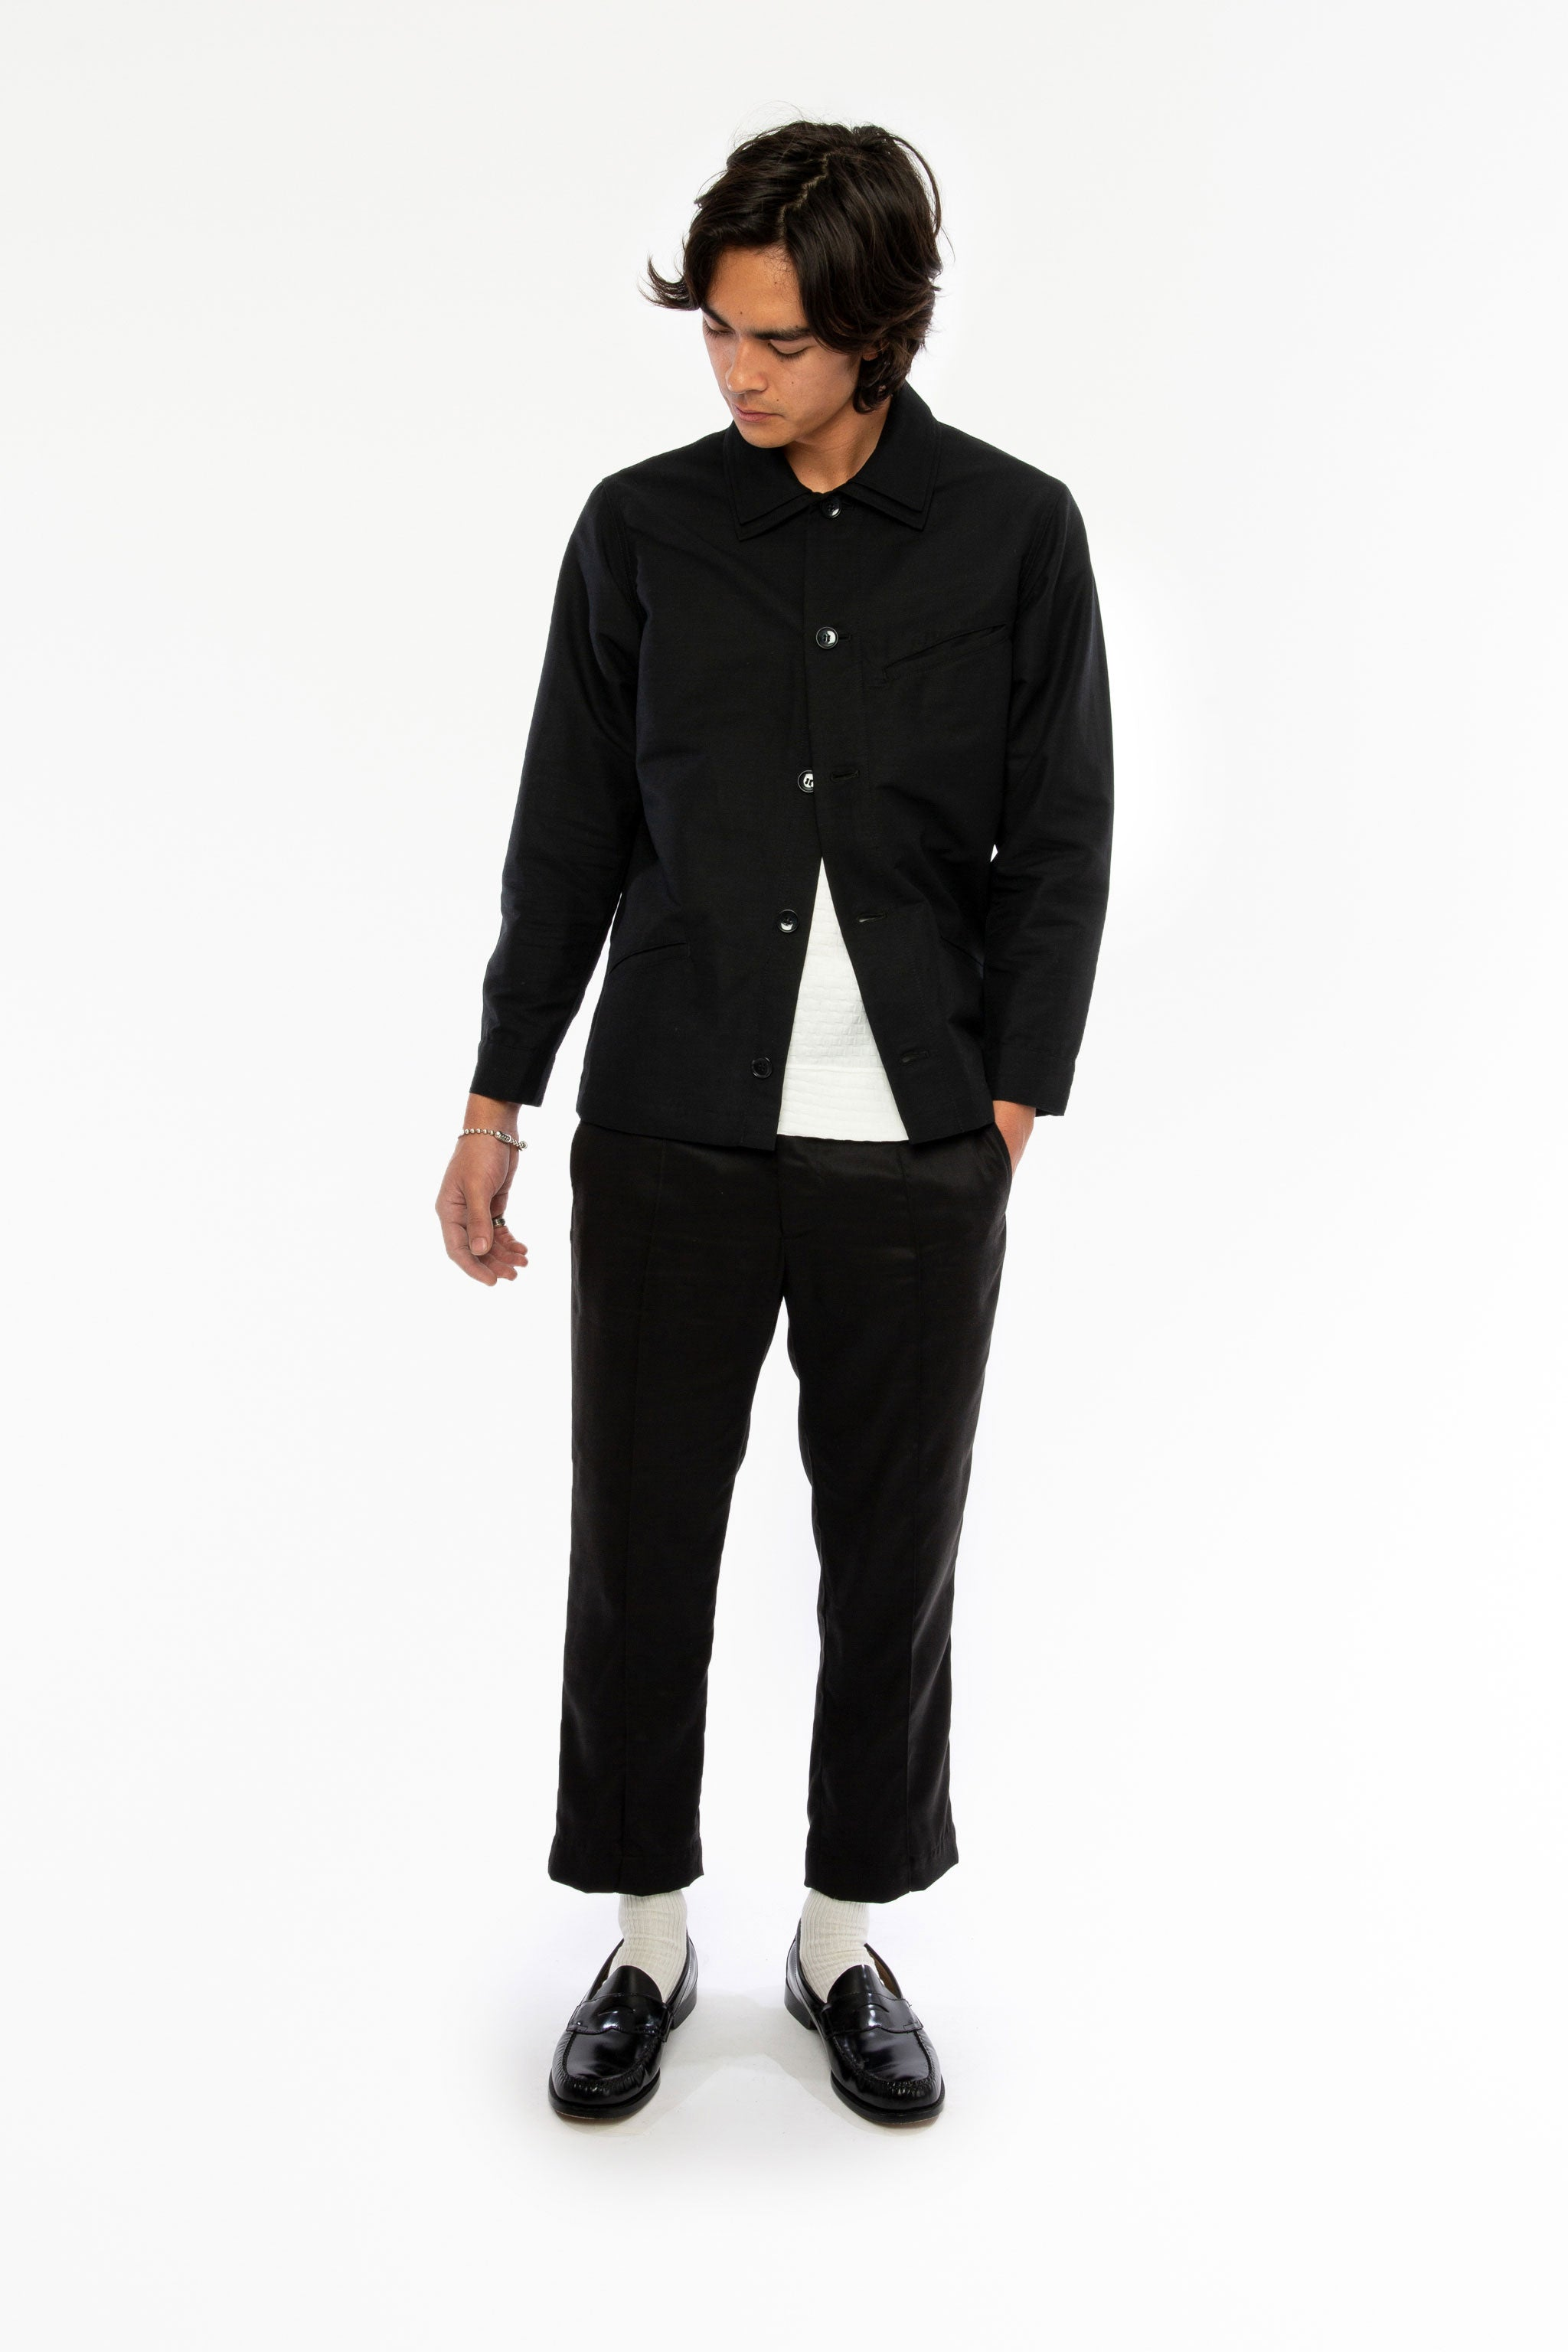 Goodfight SS19 Campus jacket Black